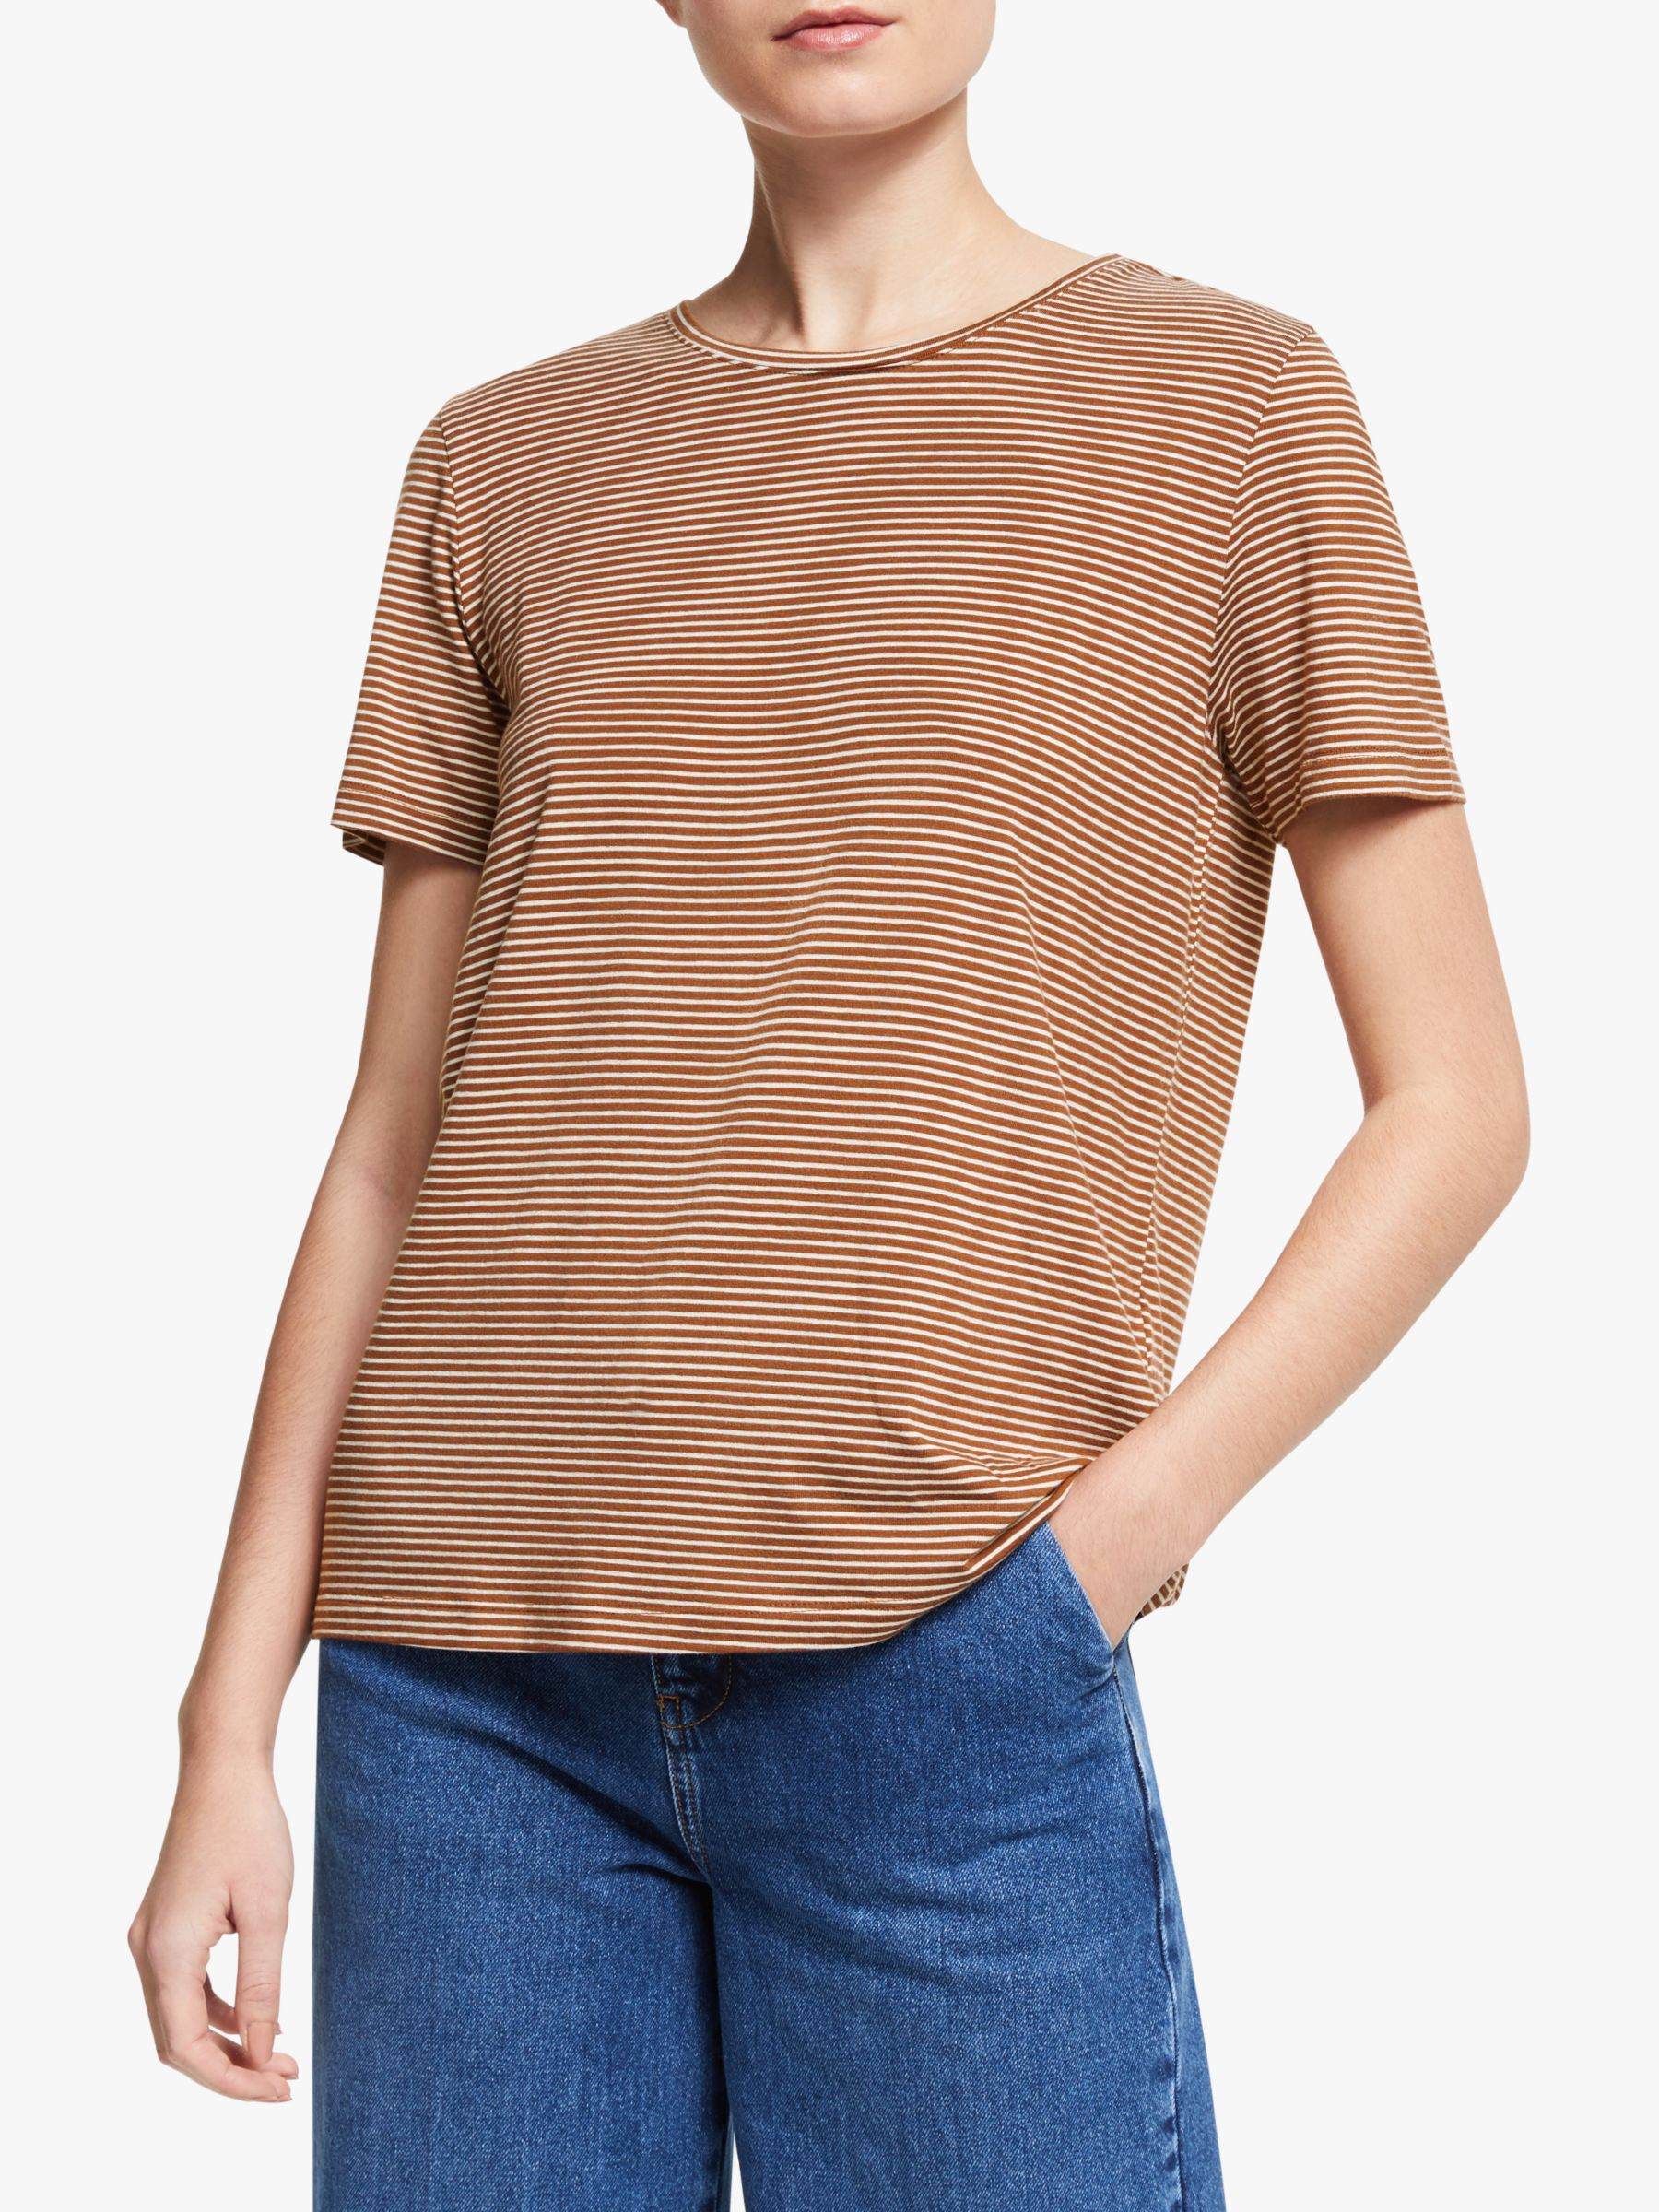 Vero Moda AWARE BY VERO MODA Stripe T-Shirt